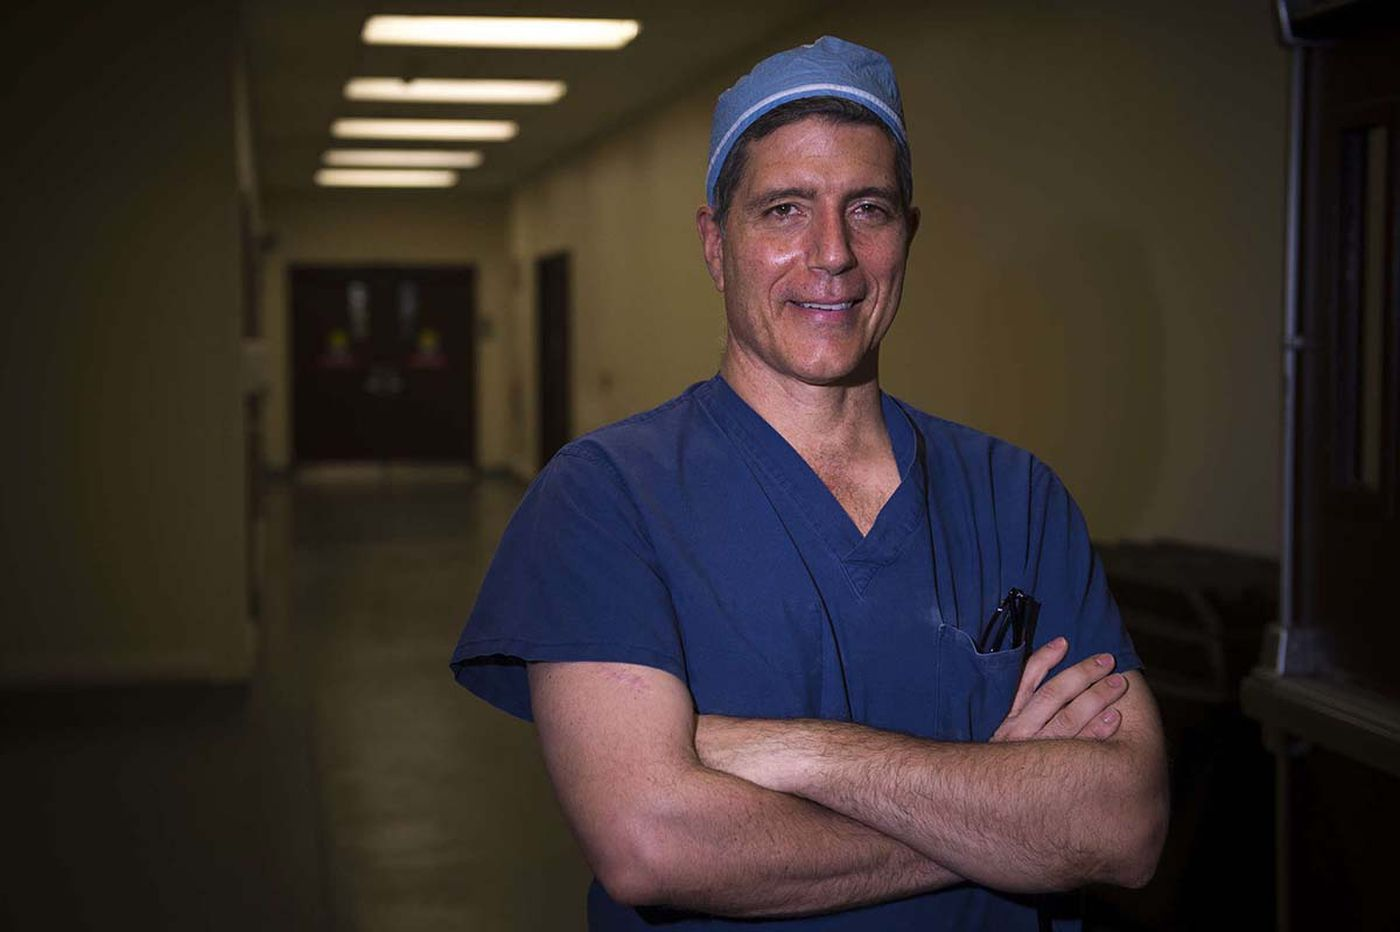 In distinguished medical career, another step in the healing